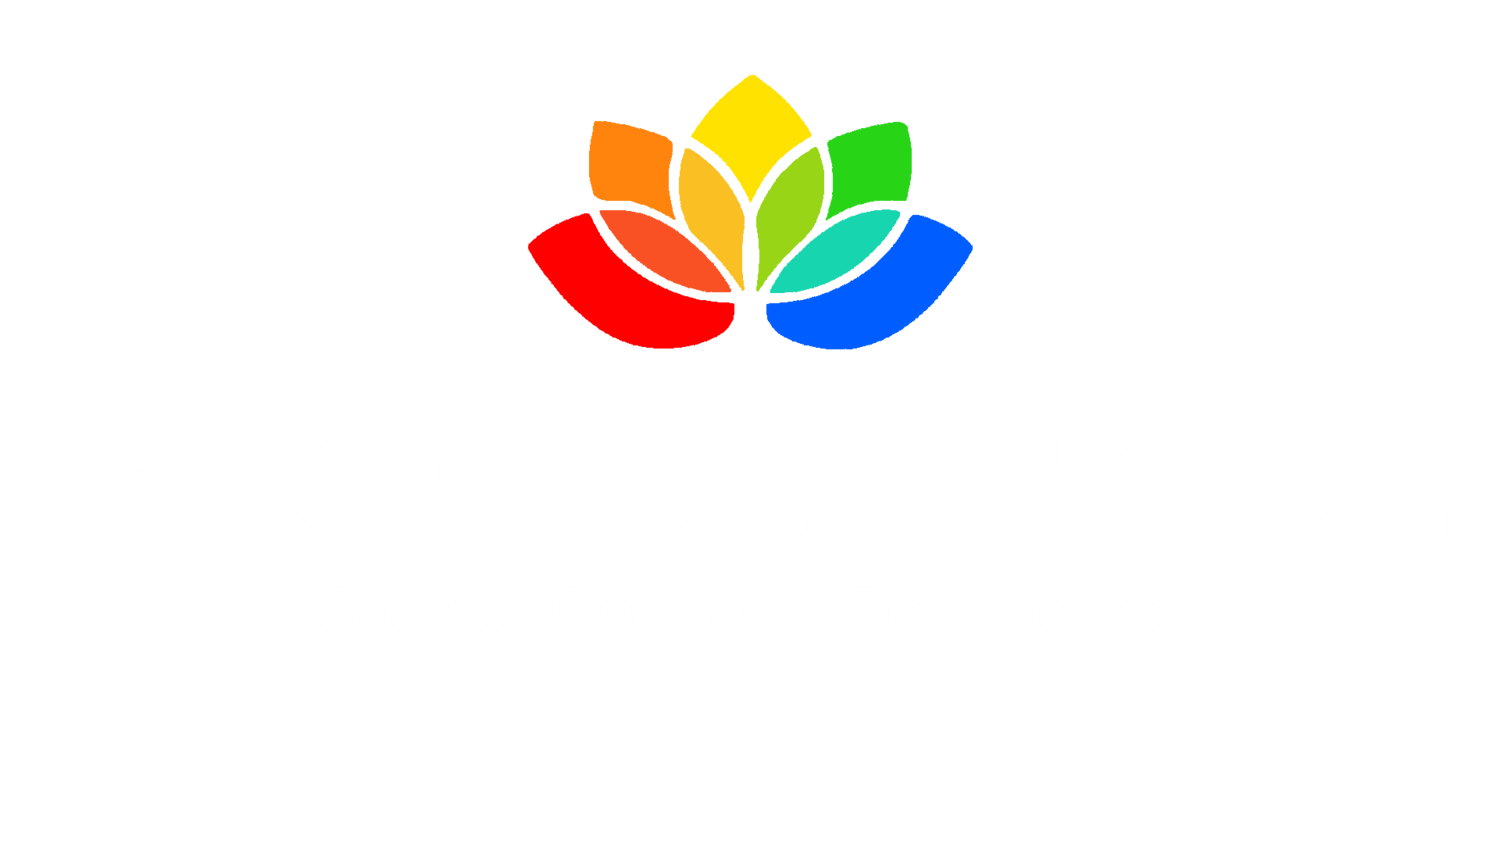 BLOOM.SPACE